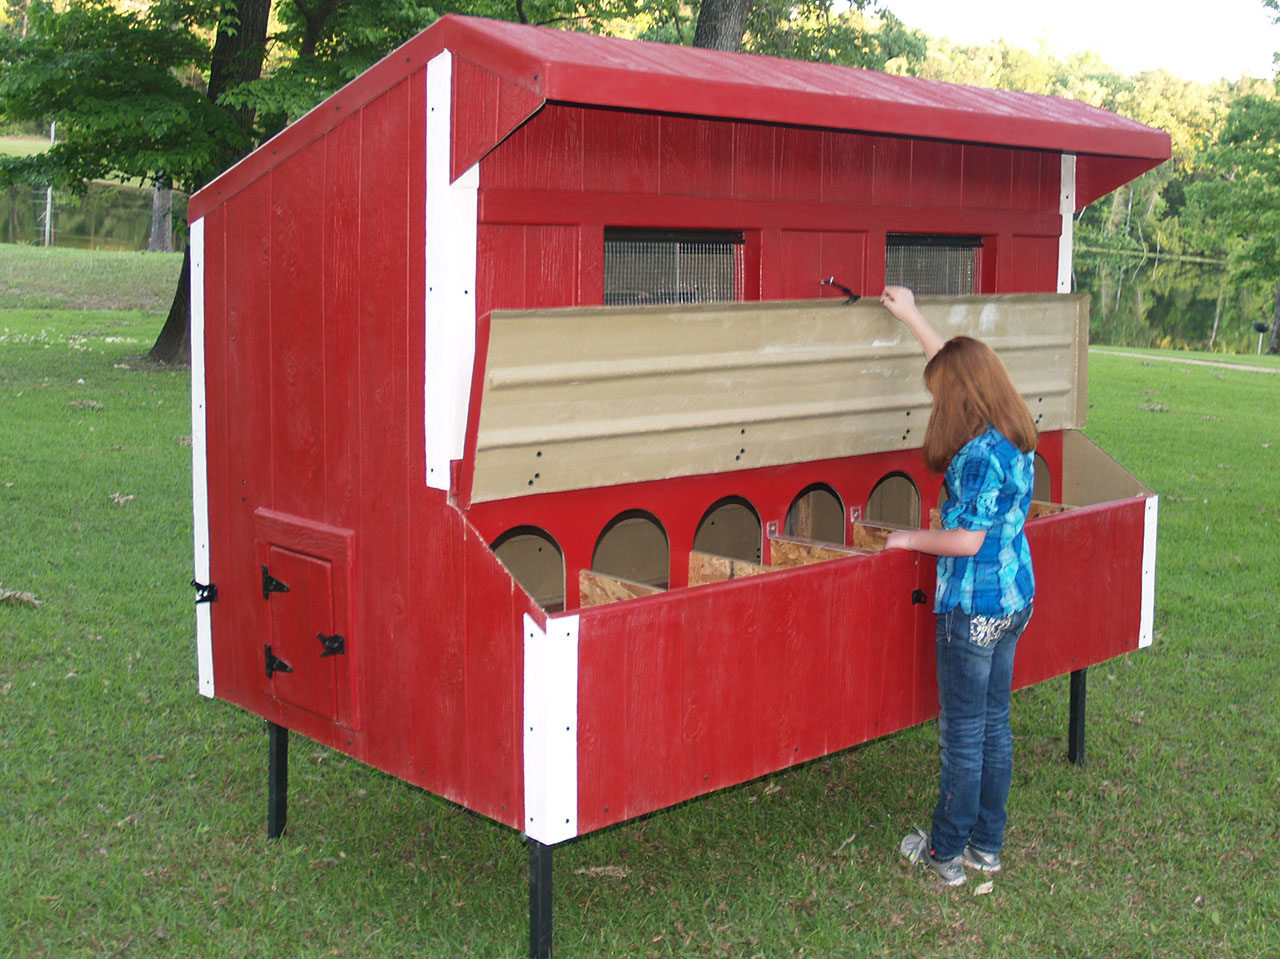 Eggstreme chicken coops 8 x 5 traditional fiberglass